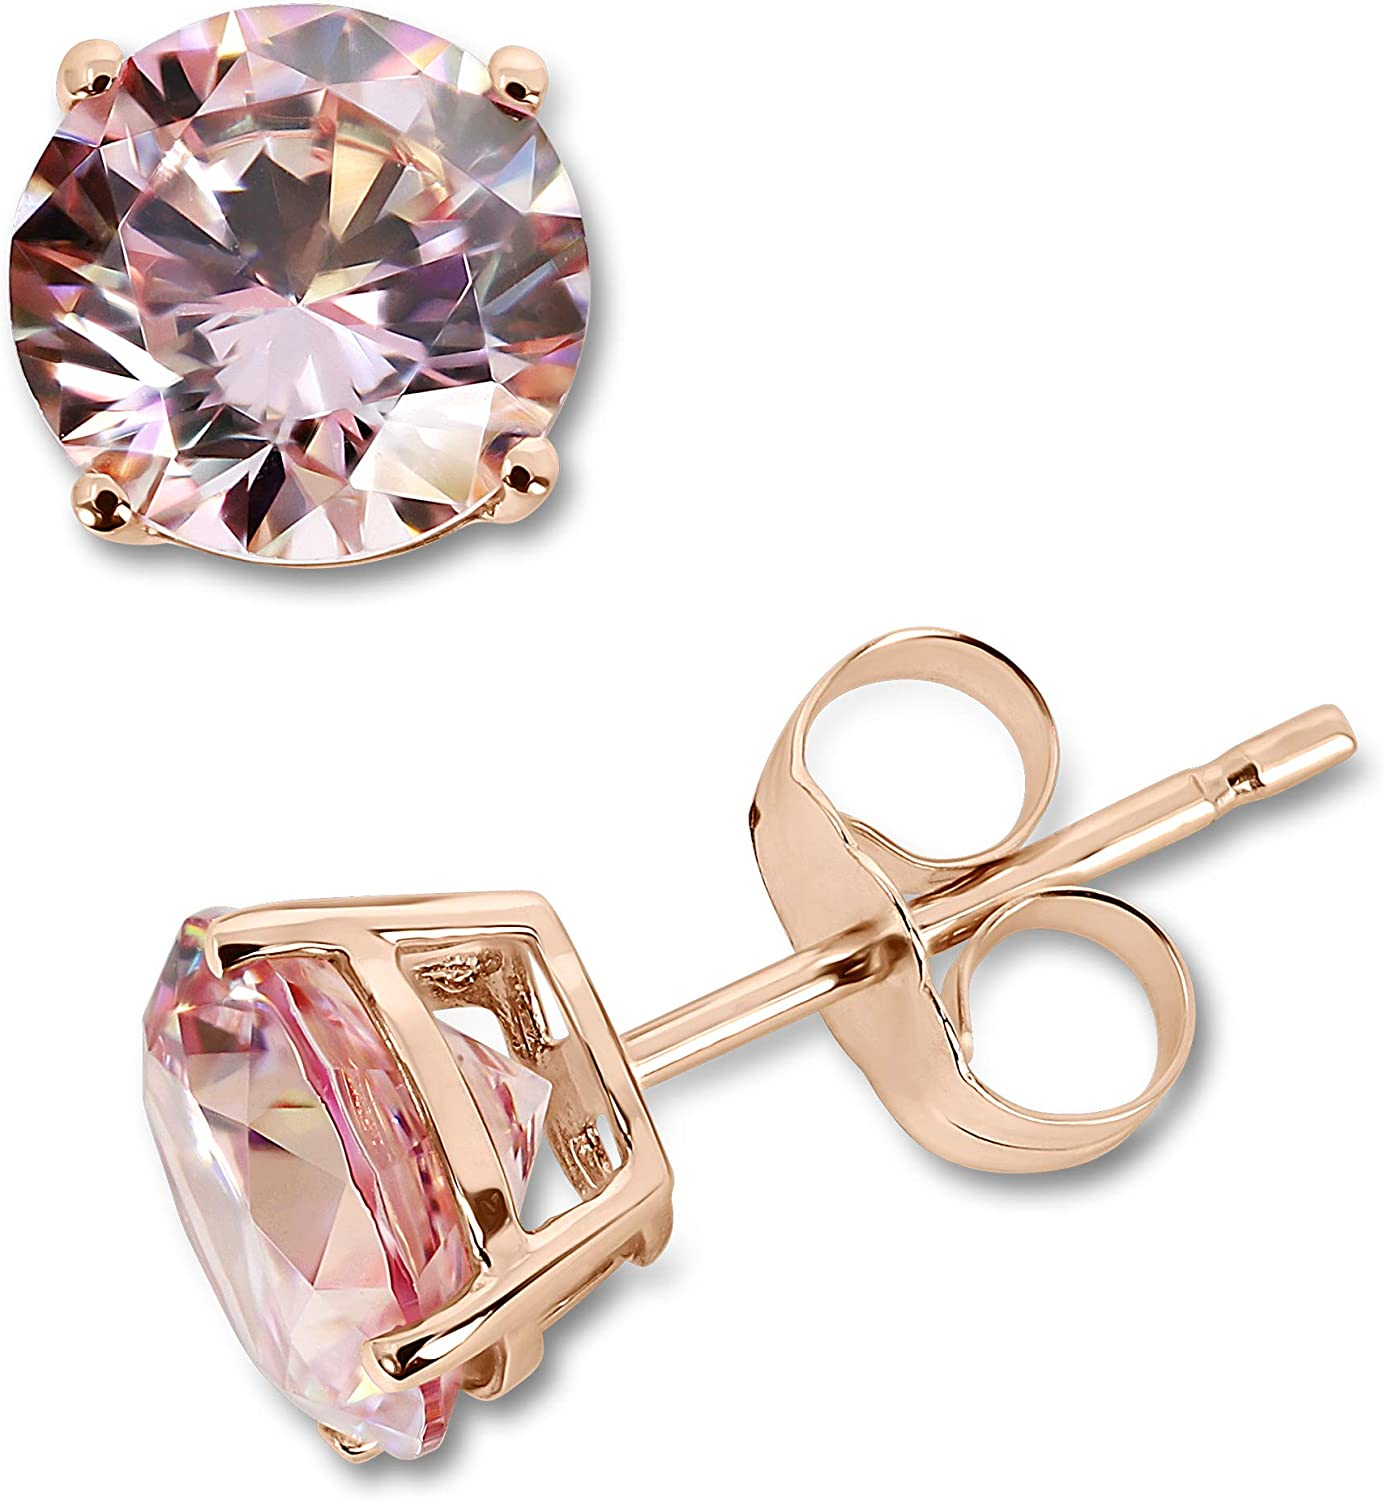 ORO LEONI 14K Solid Rose Gold Designer Stud Earrings for Women. 7mm Round Diamond Cut Fancy Morganite Color Cubic Zirconia Totaling 3-1/2 Carats.